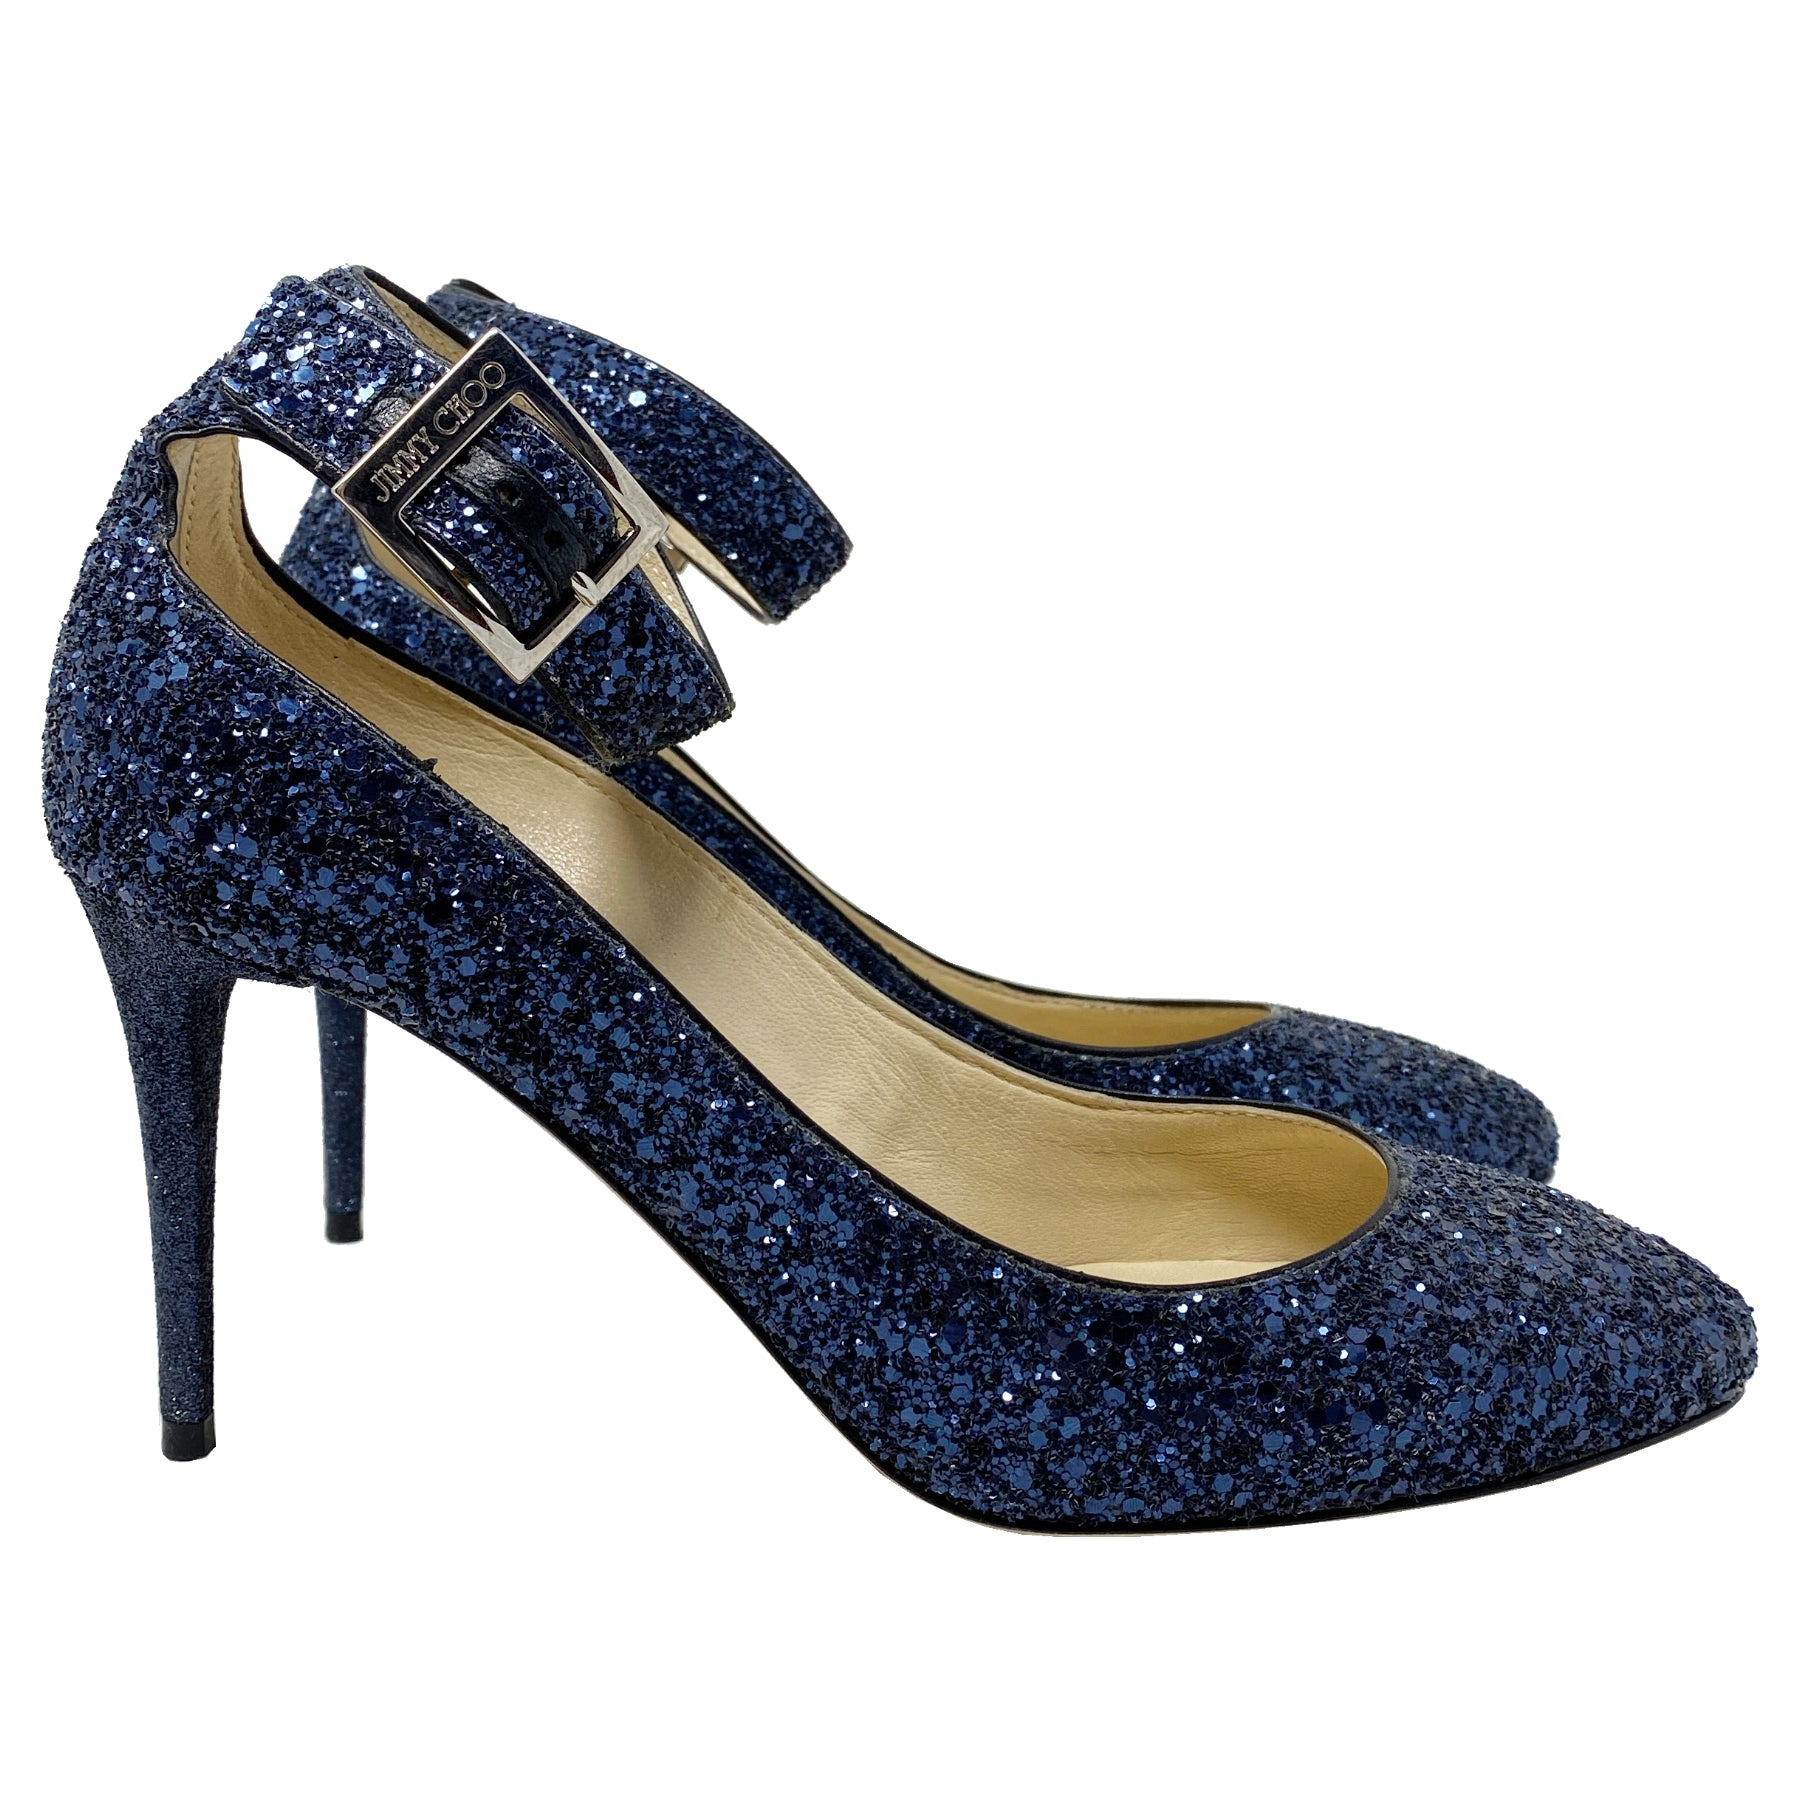 Jimmy Choo Helena 85mm Glitter Pumps Size EU 37